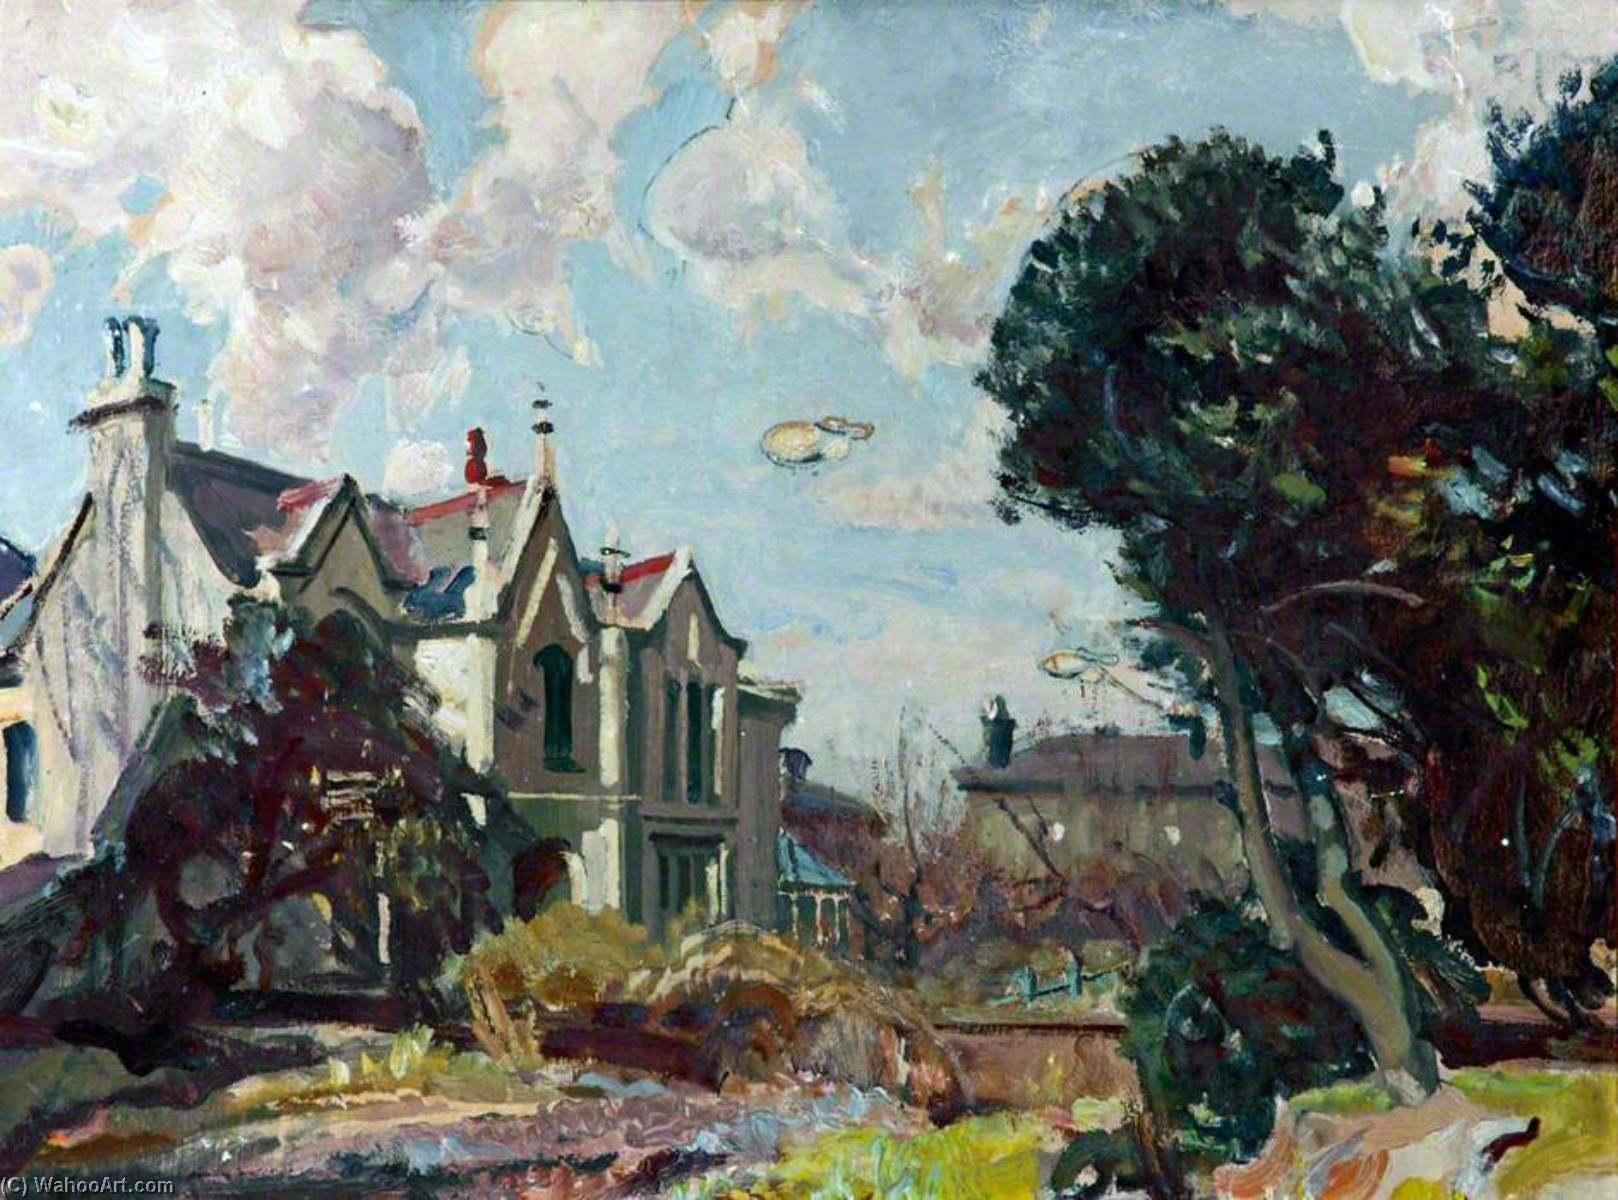 Caroline Place with Barrage Balloons, Oil by William Charles Penn